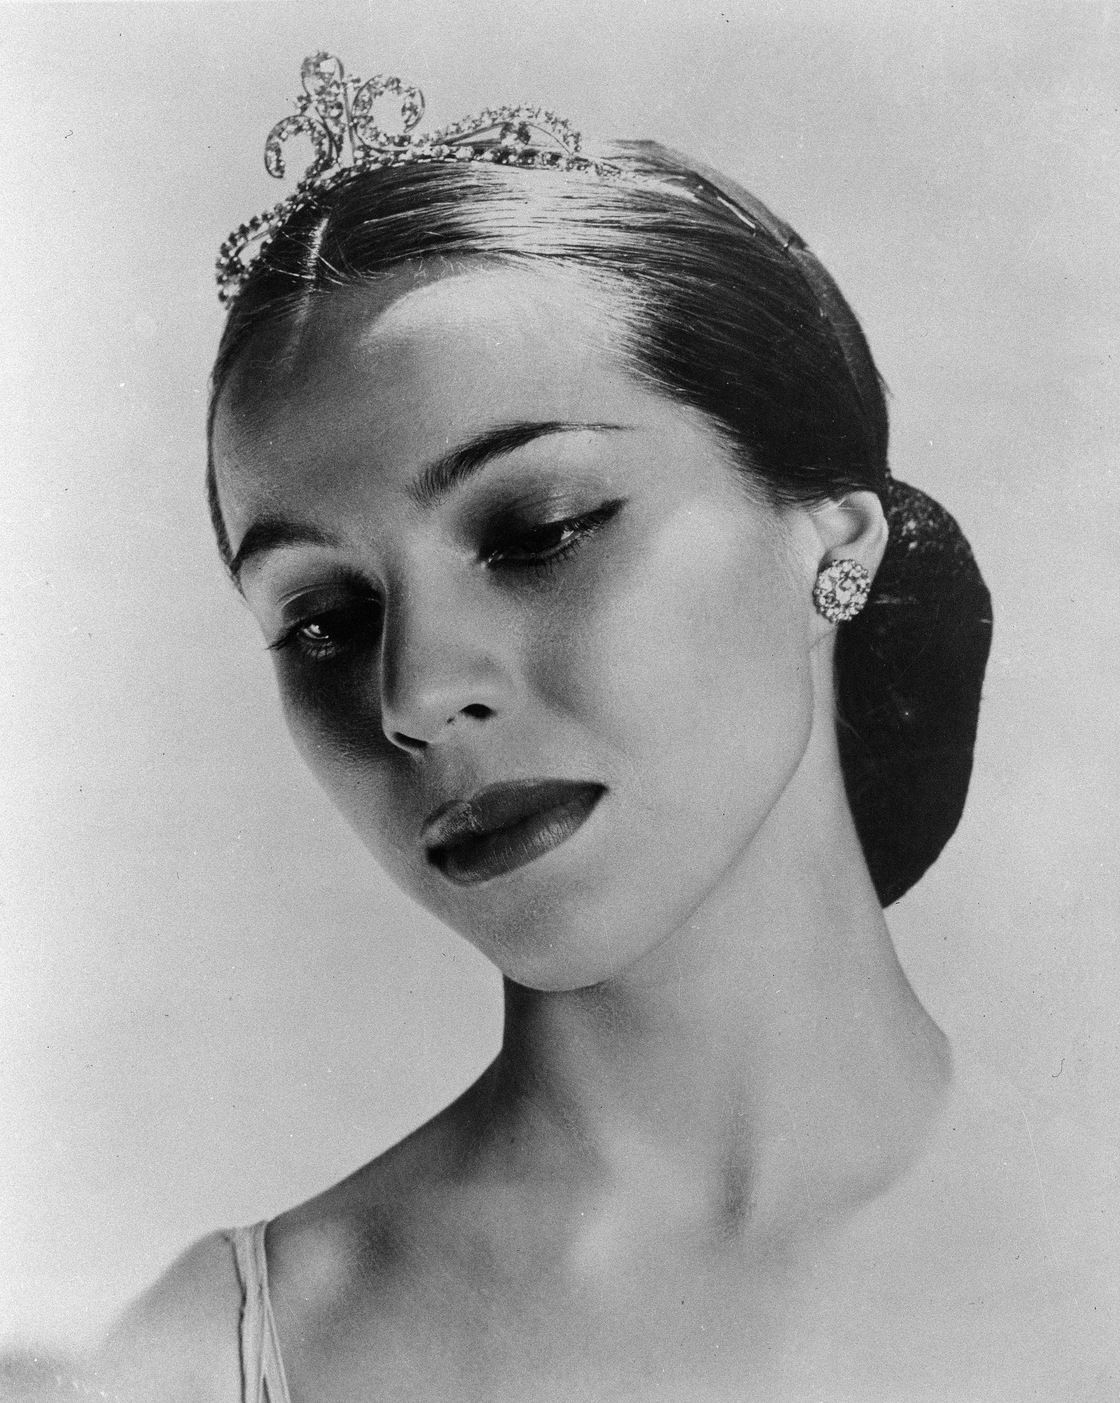 Maria Tallchief Birthday Legacy - Remembering Maria Tallchief